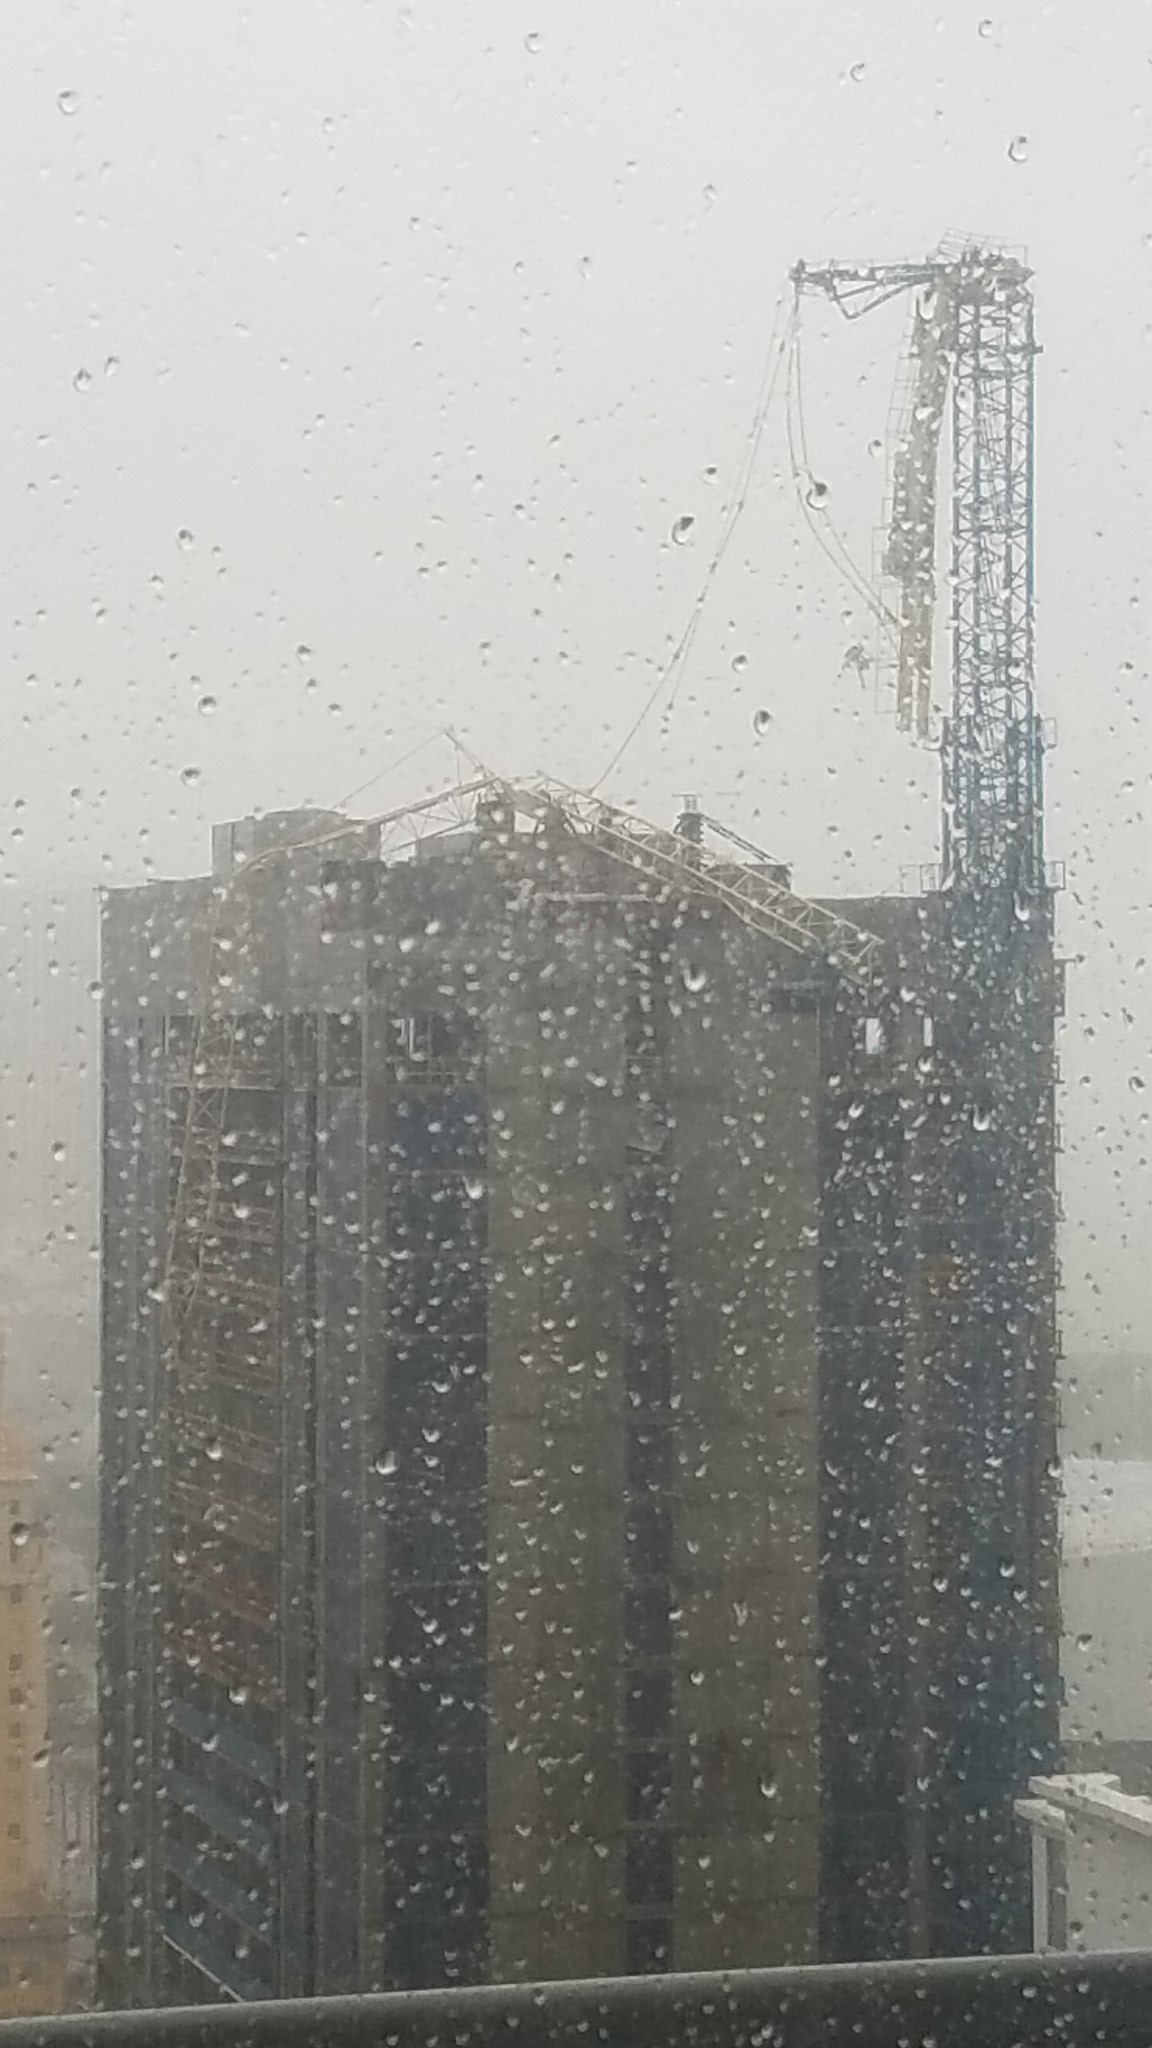 "<div class=""meta image-caption""><div class=""origin-logo origin-image none""><span>none</span></div><span class=""caption-text"">A large crane snapped from the force of the storm in Miami. (nesumosa/Twitter)</span></div>"